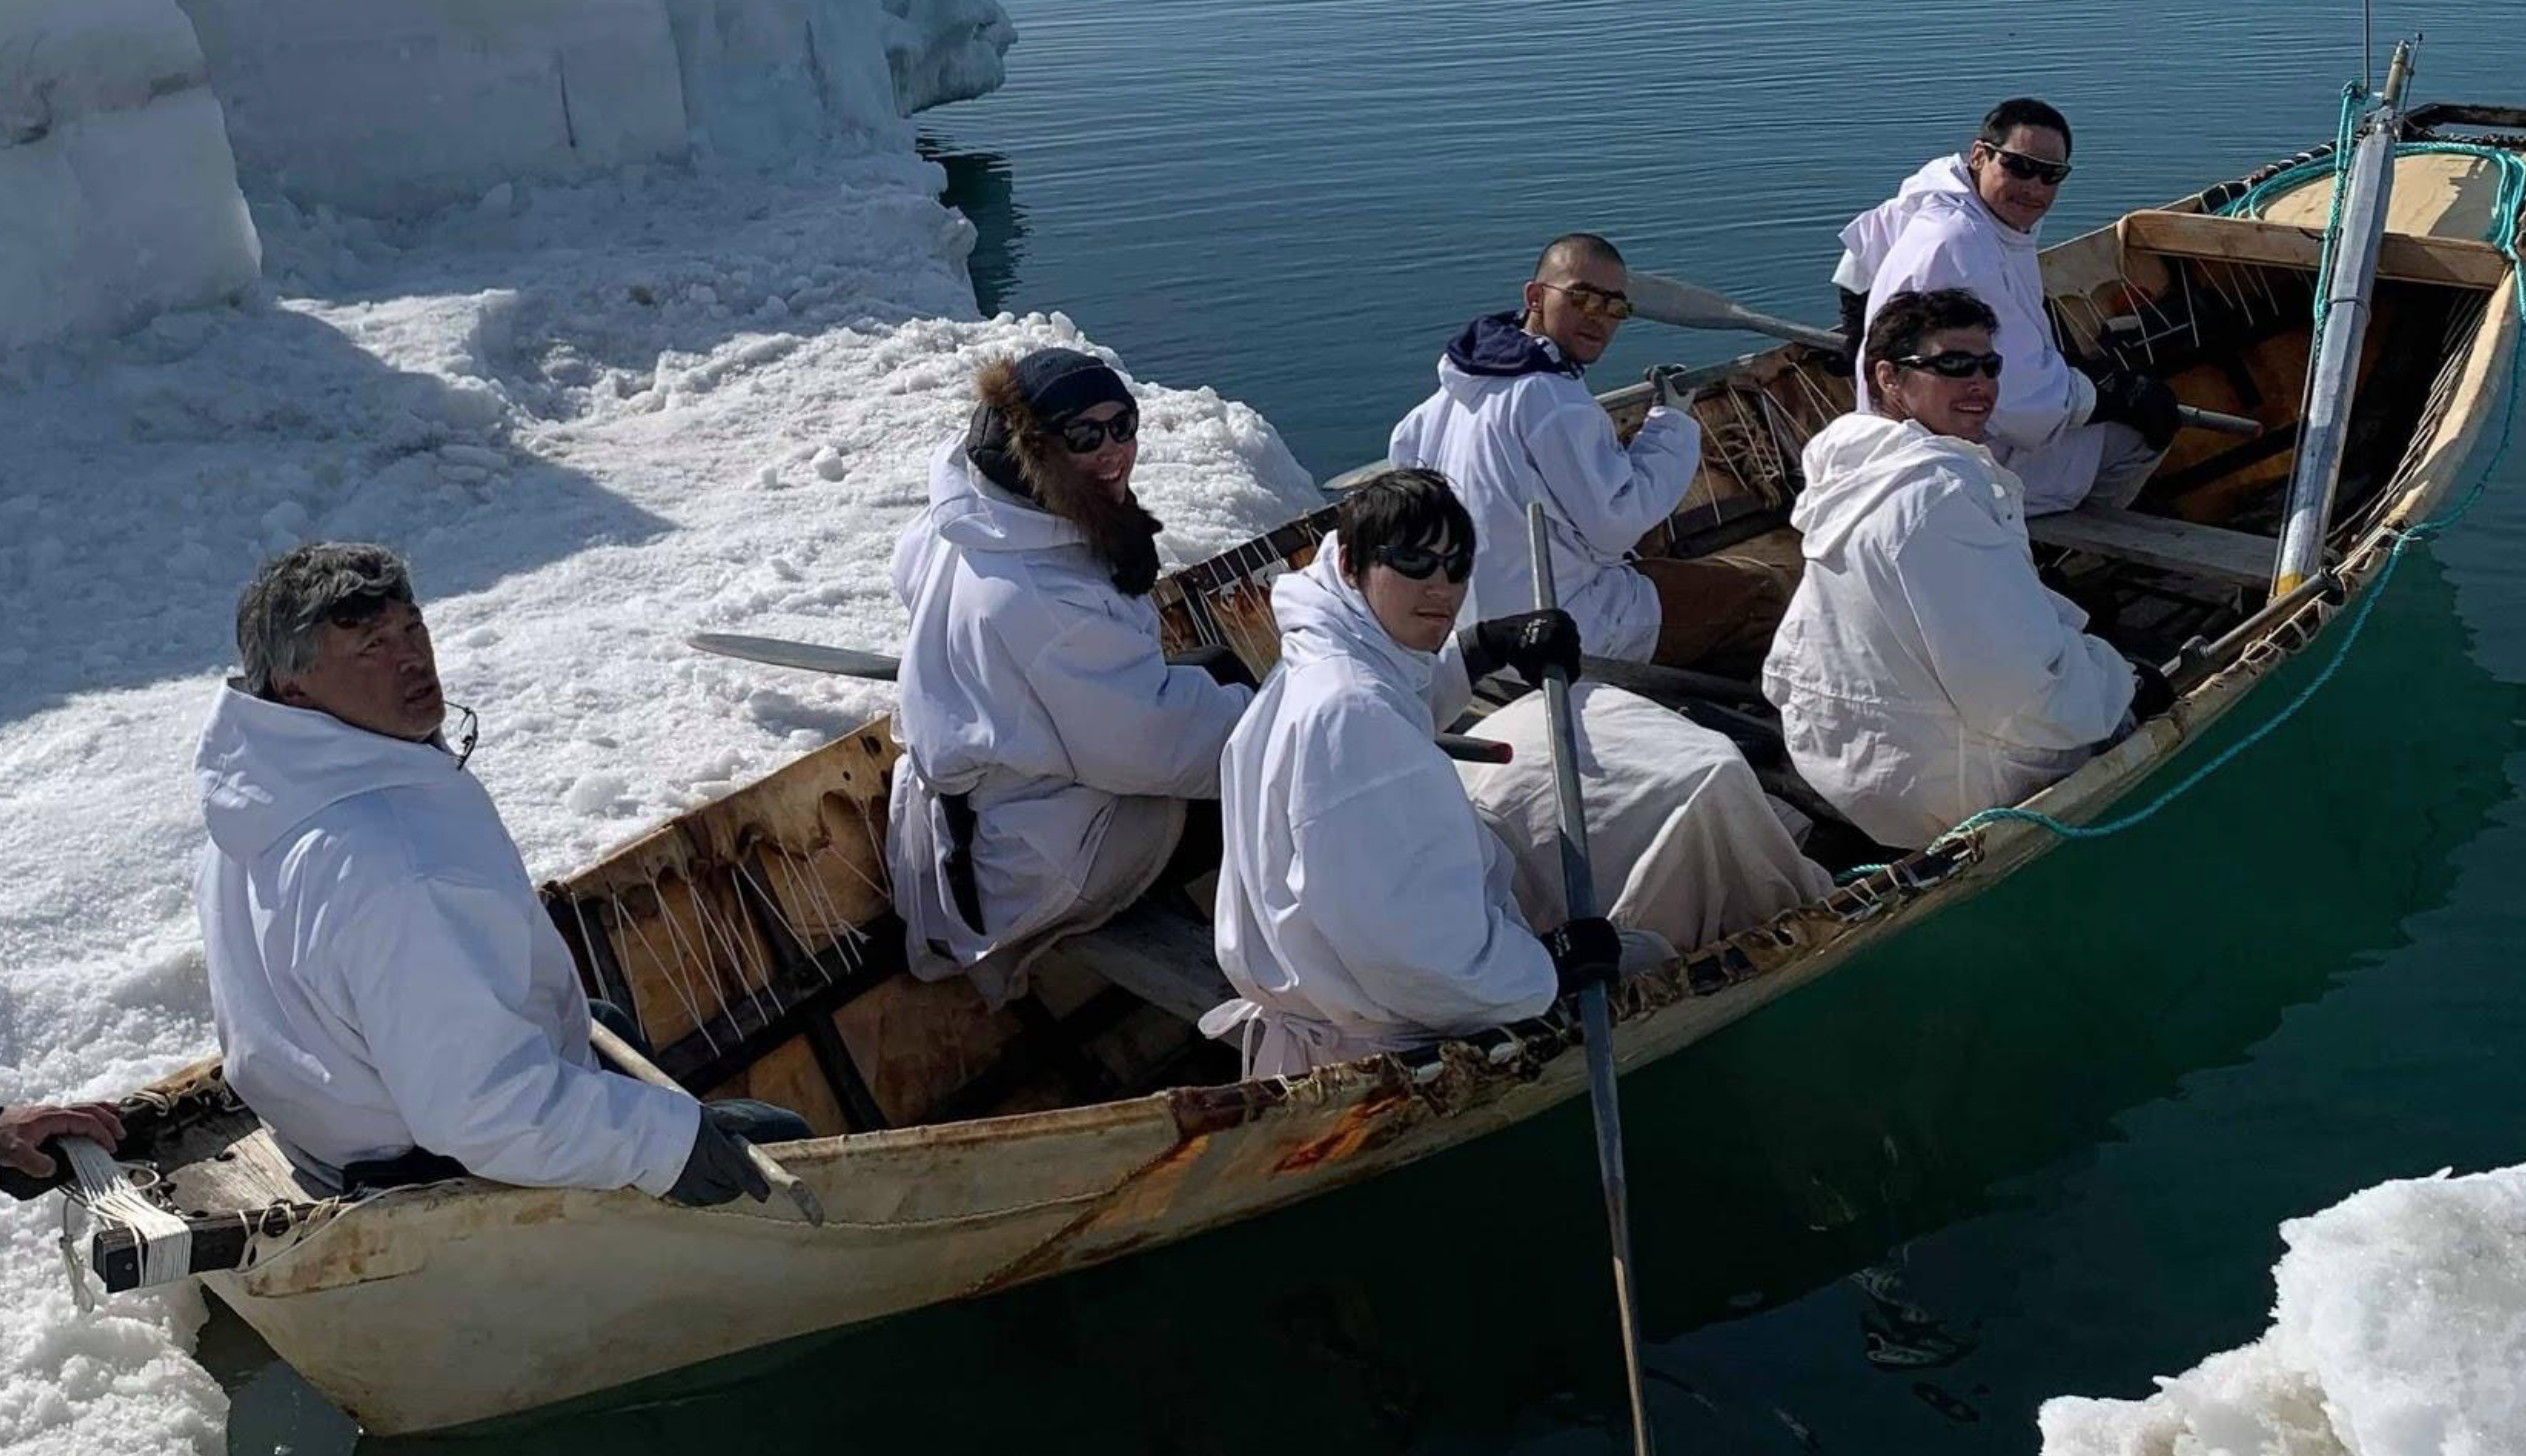 Gordon Ikayuak Brower and his whaling crew about to get out in open water on their traditional umiaq/seal skin boat. Photo: Courtesy of Gordon Ikayuak Brower